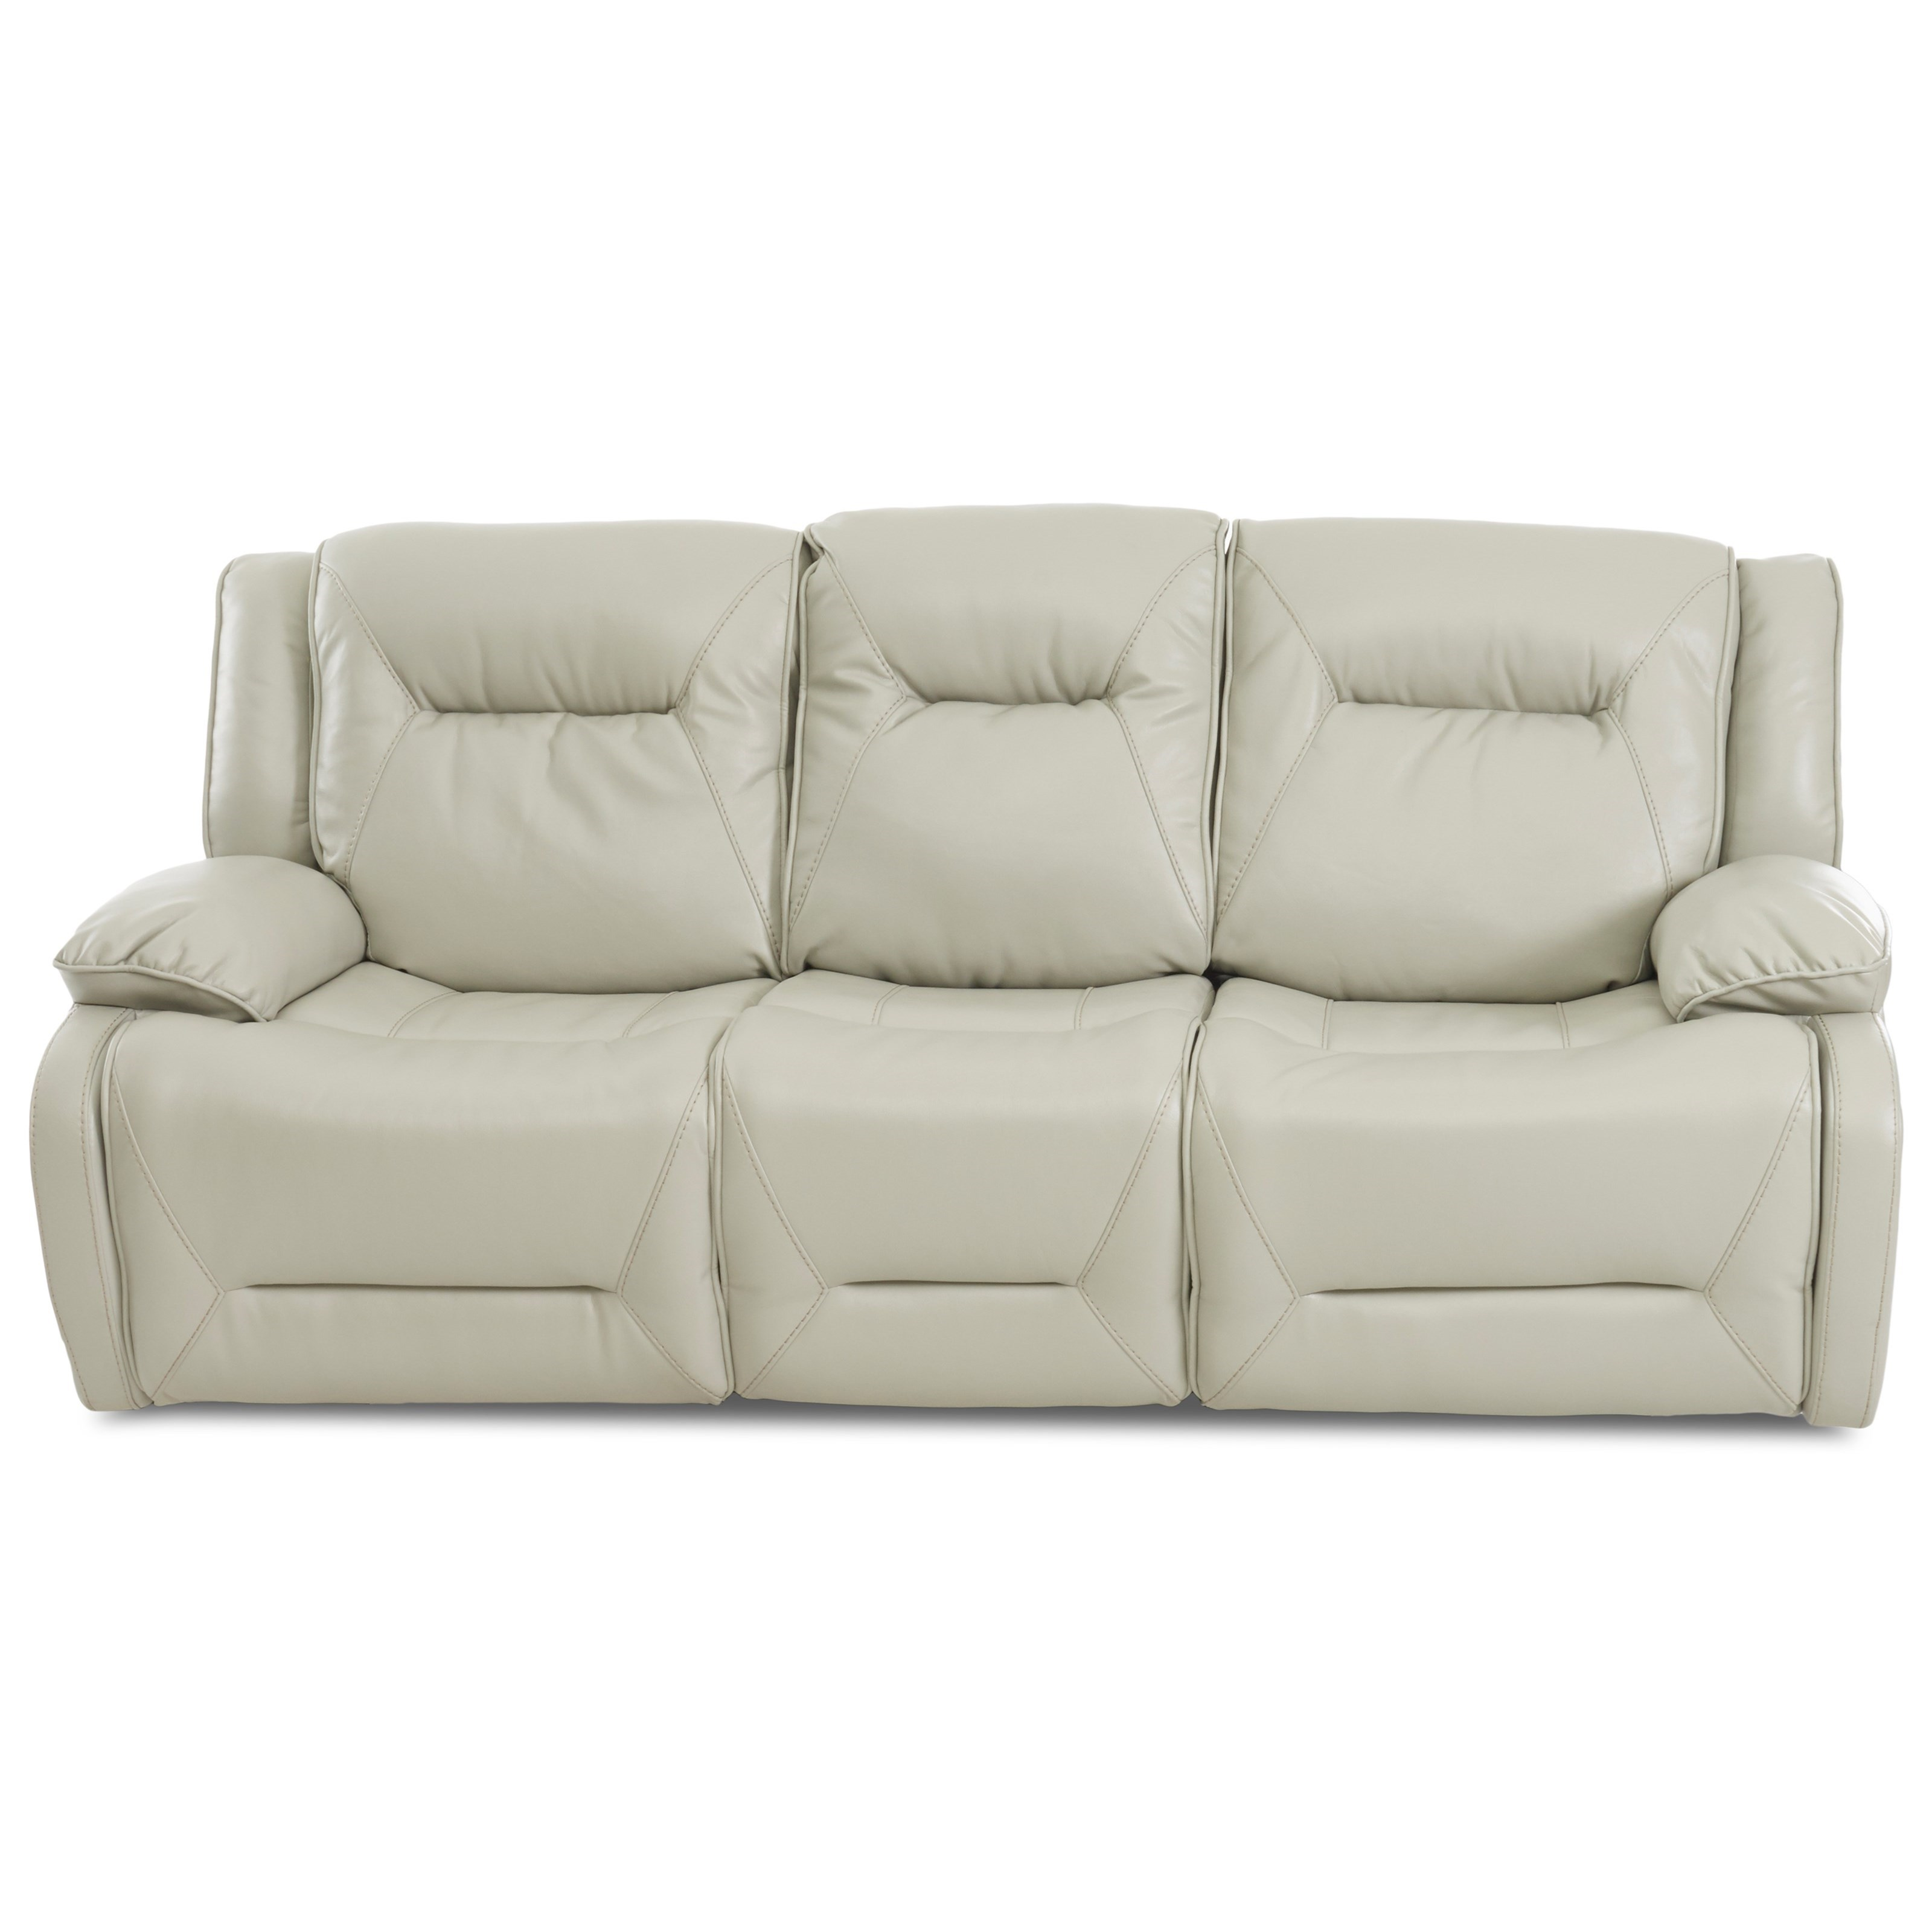 Klaussner Leather Sofa Review: Klaussner International Dansby Casual Faux Leather